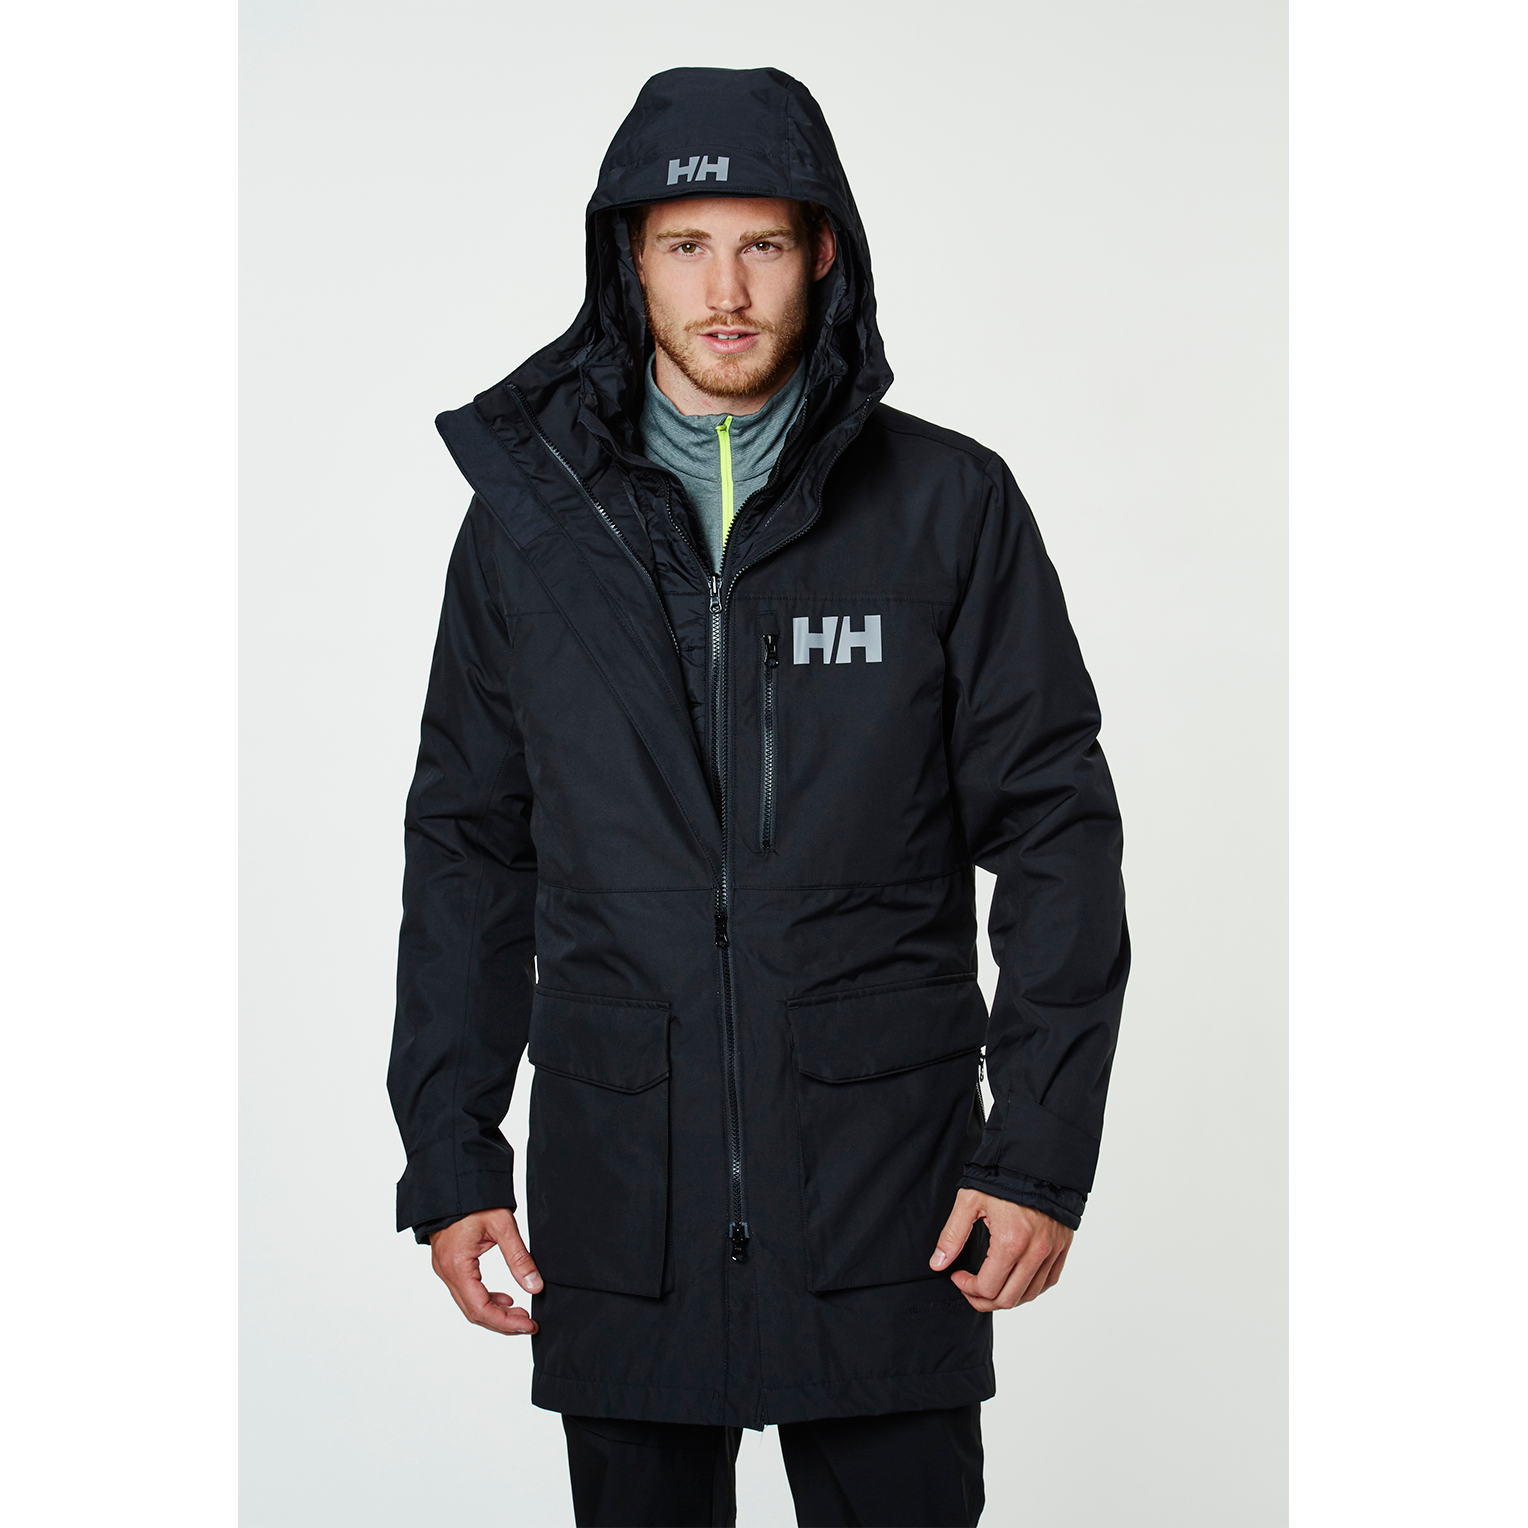 rigging coat men jackets helly hansen official online store crazy stuff pinterest. Black Bedroom Furniture Sets. Home Design Ideas